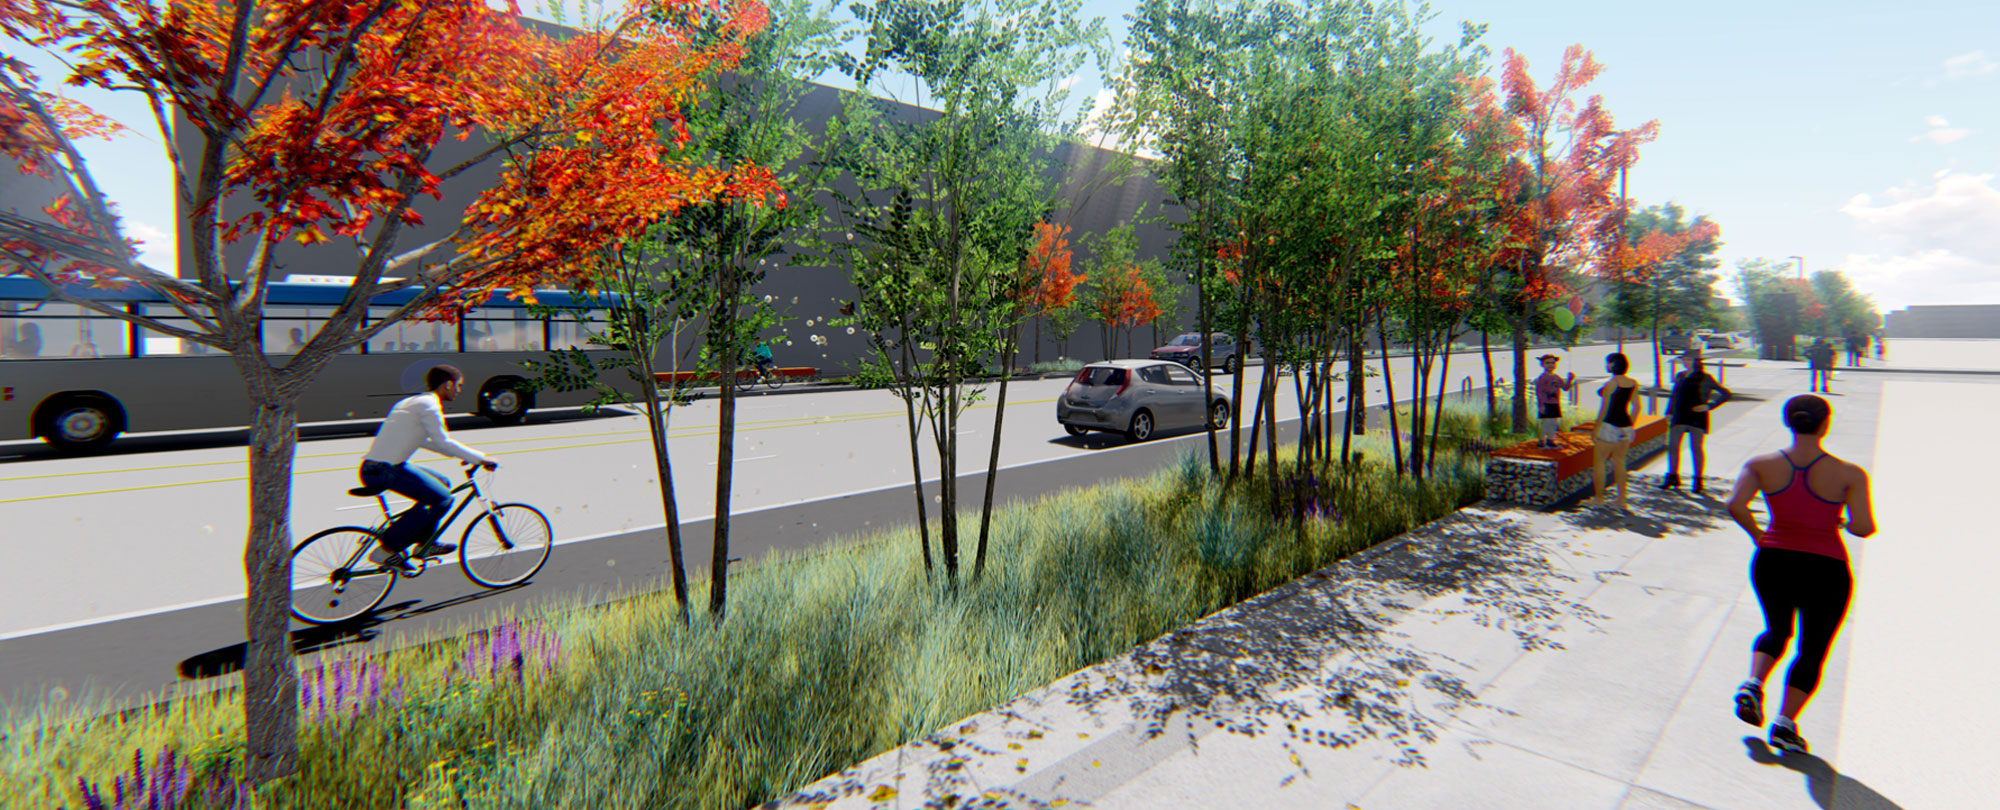 artist rendering of cyclists and new trees along Brighton Boulevard